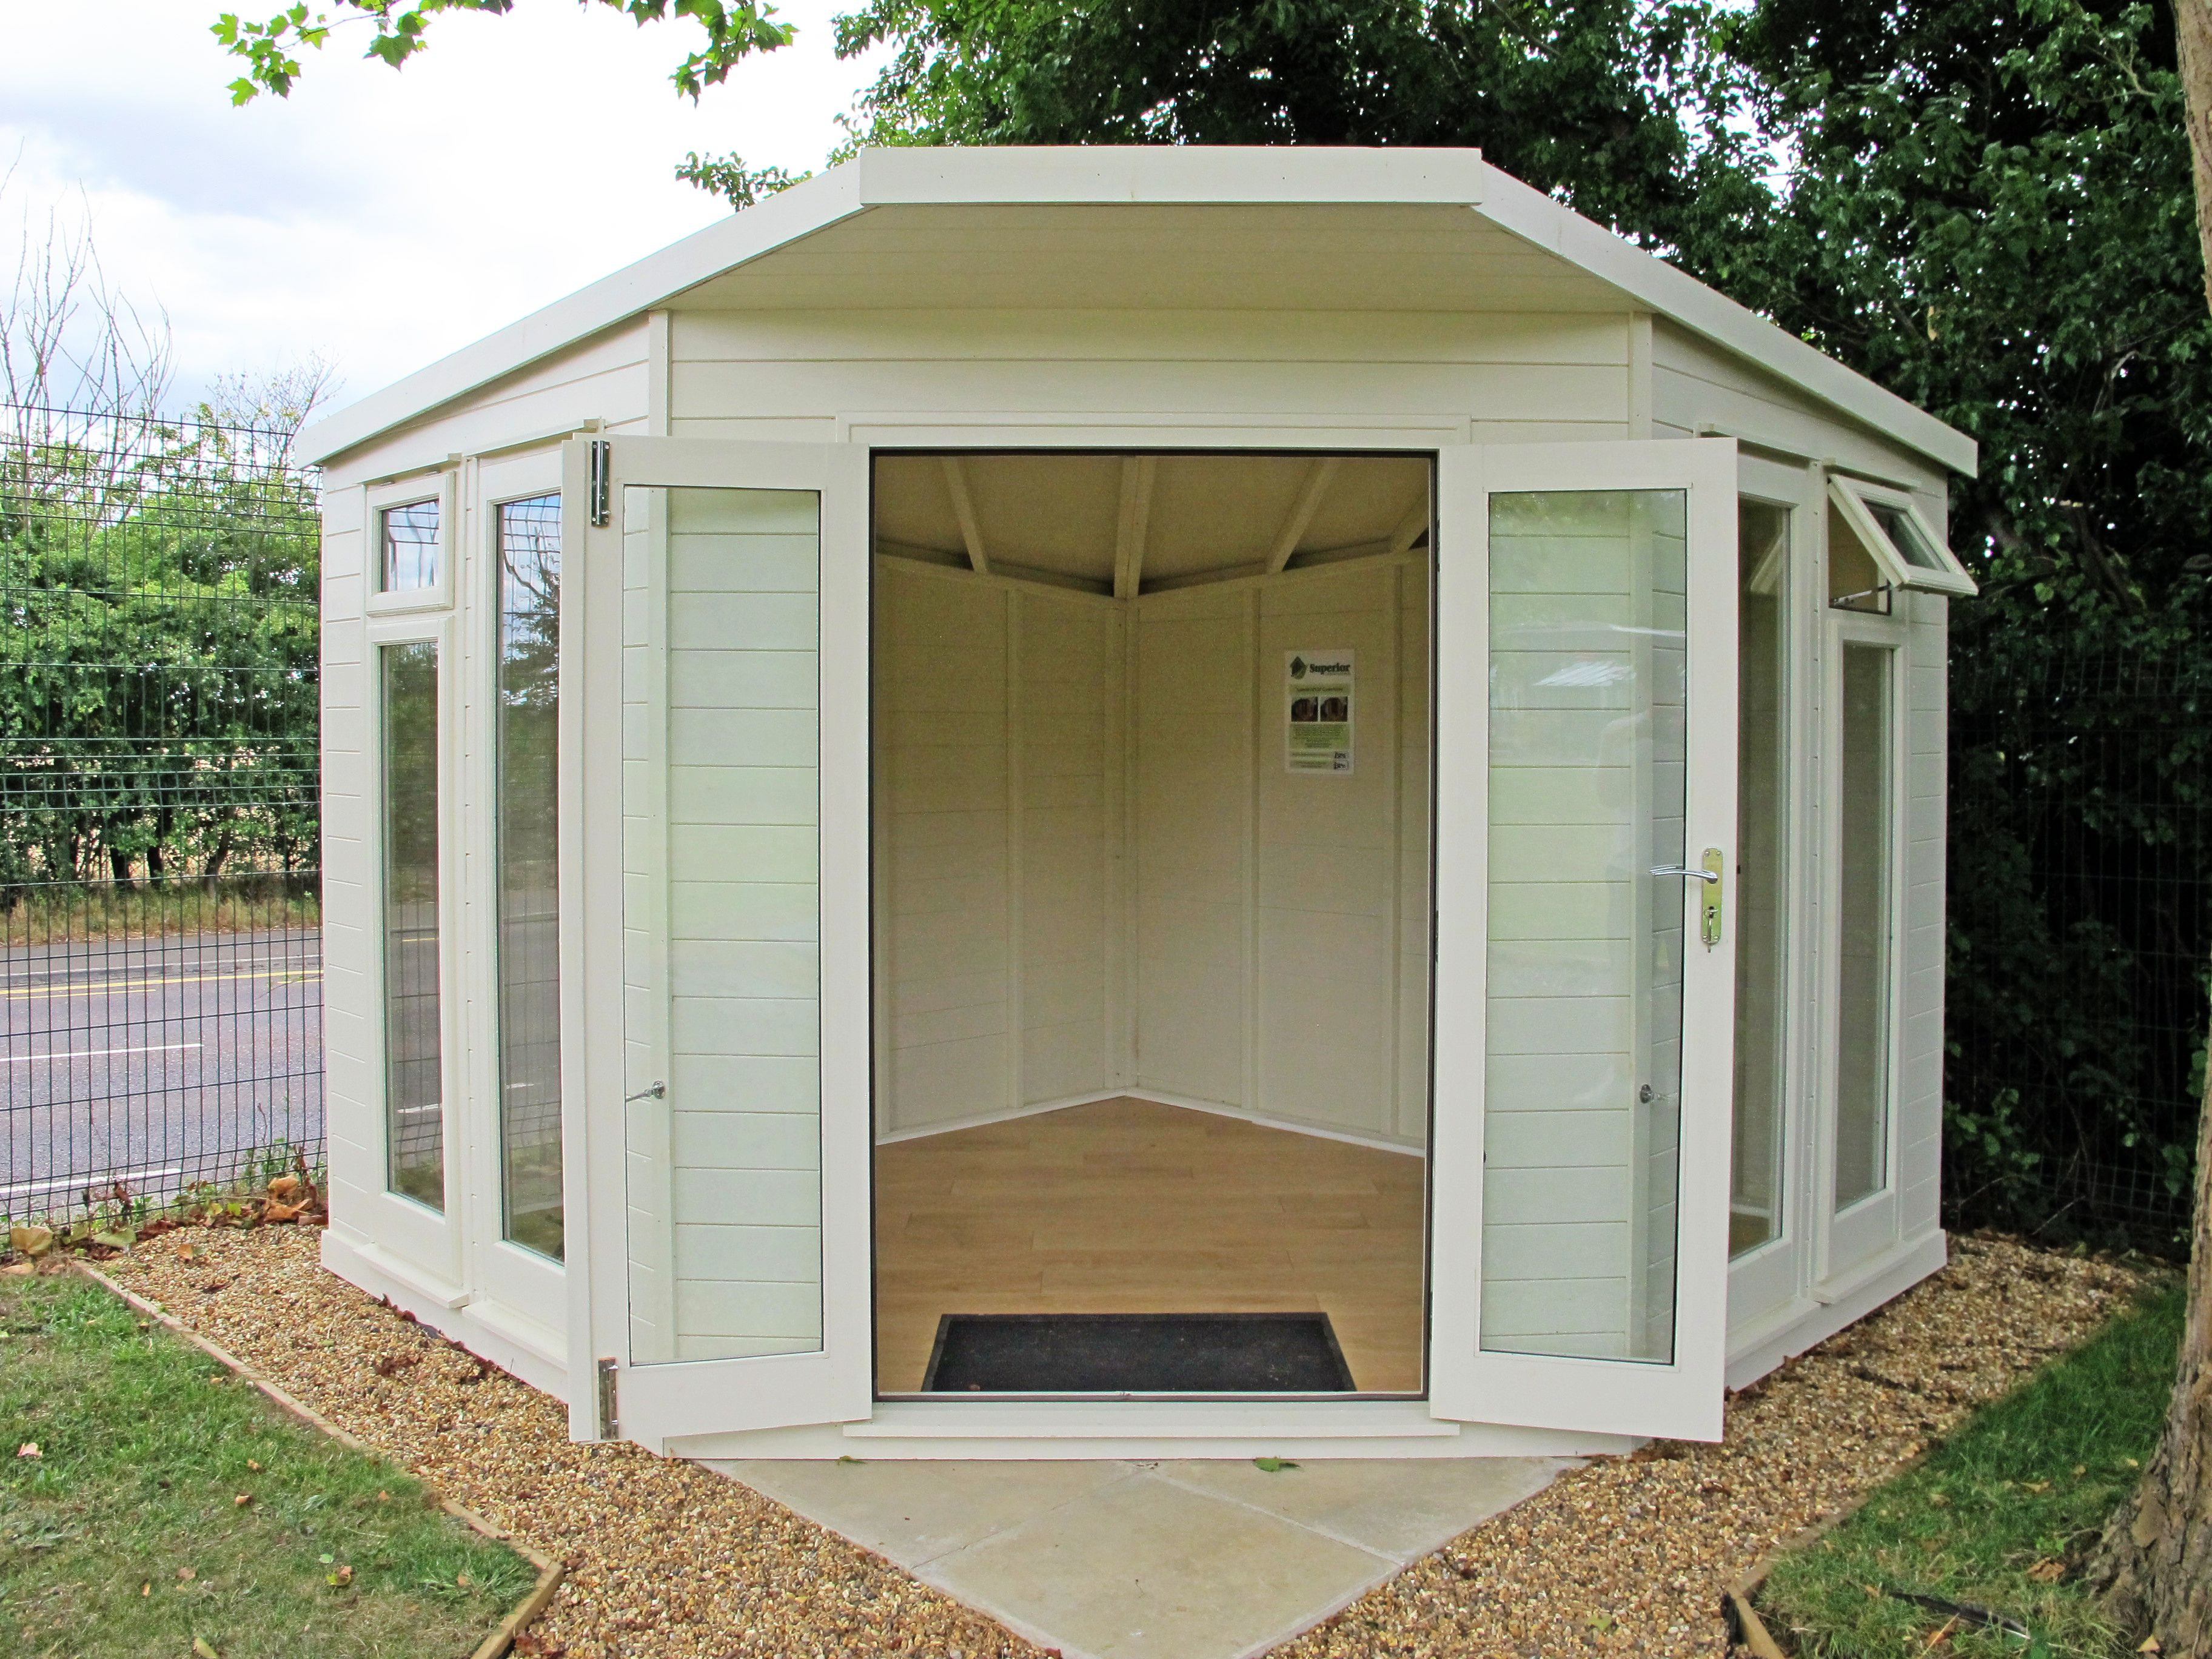 Charmant Contemporary Corner Shed Pent Roof   Google Search